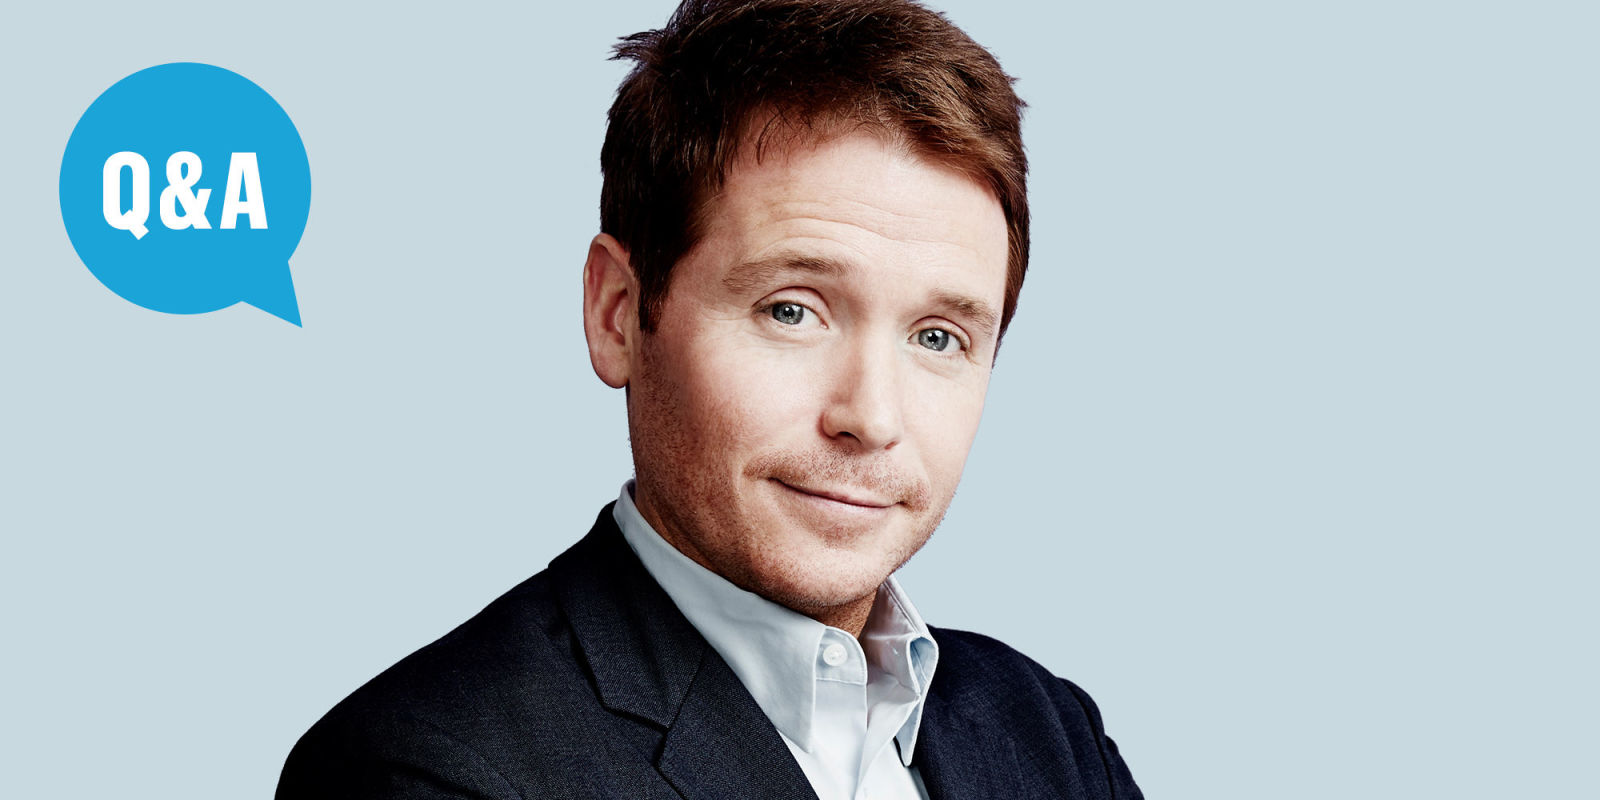 kevin connolly height and weight